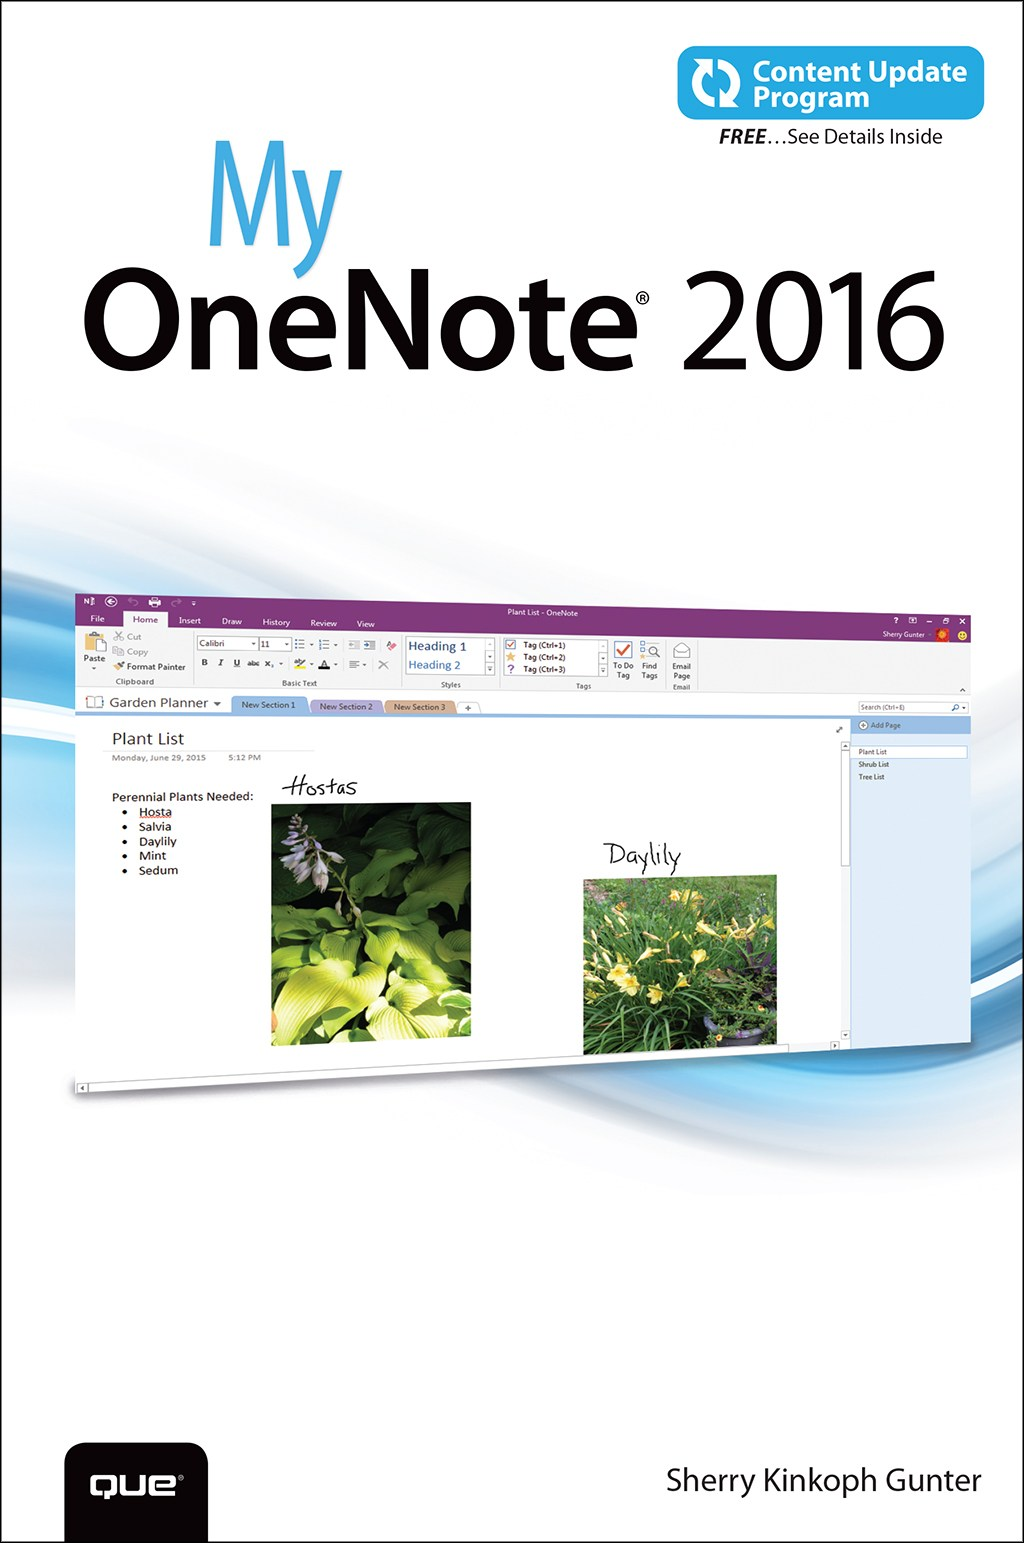 My OneNote 2016 (includes Content Update Program)